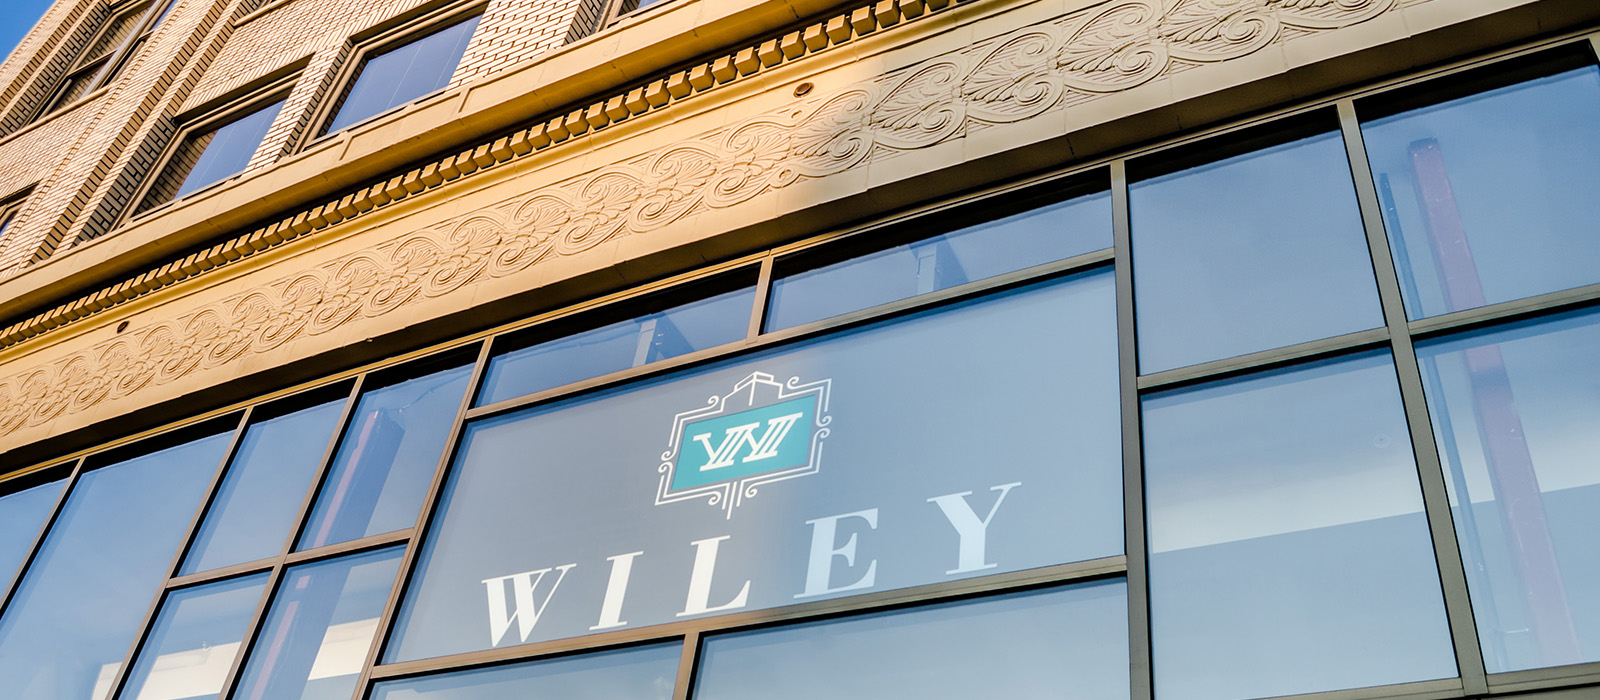 WDM Historical Architecture | Wiley Building